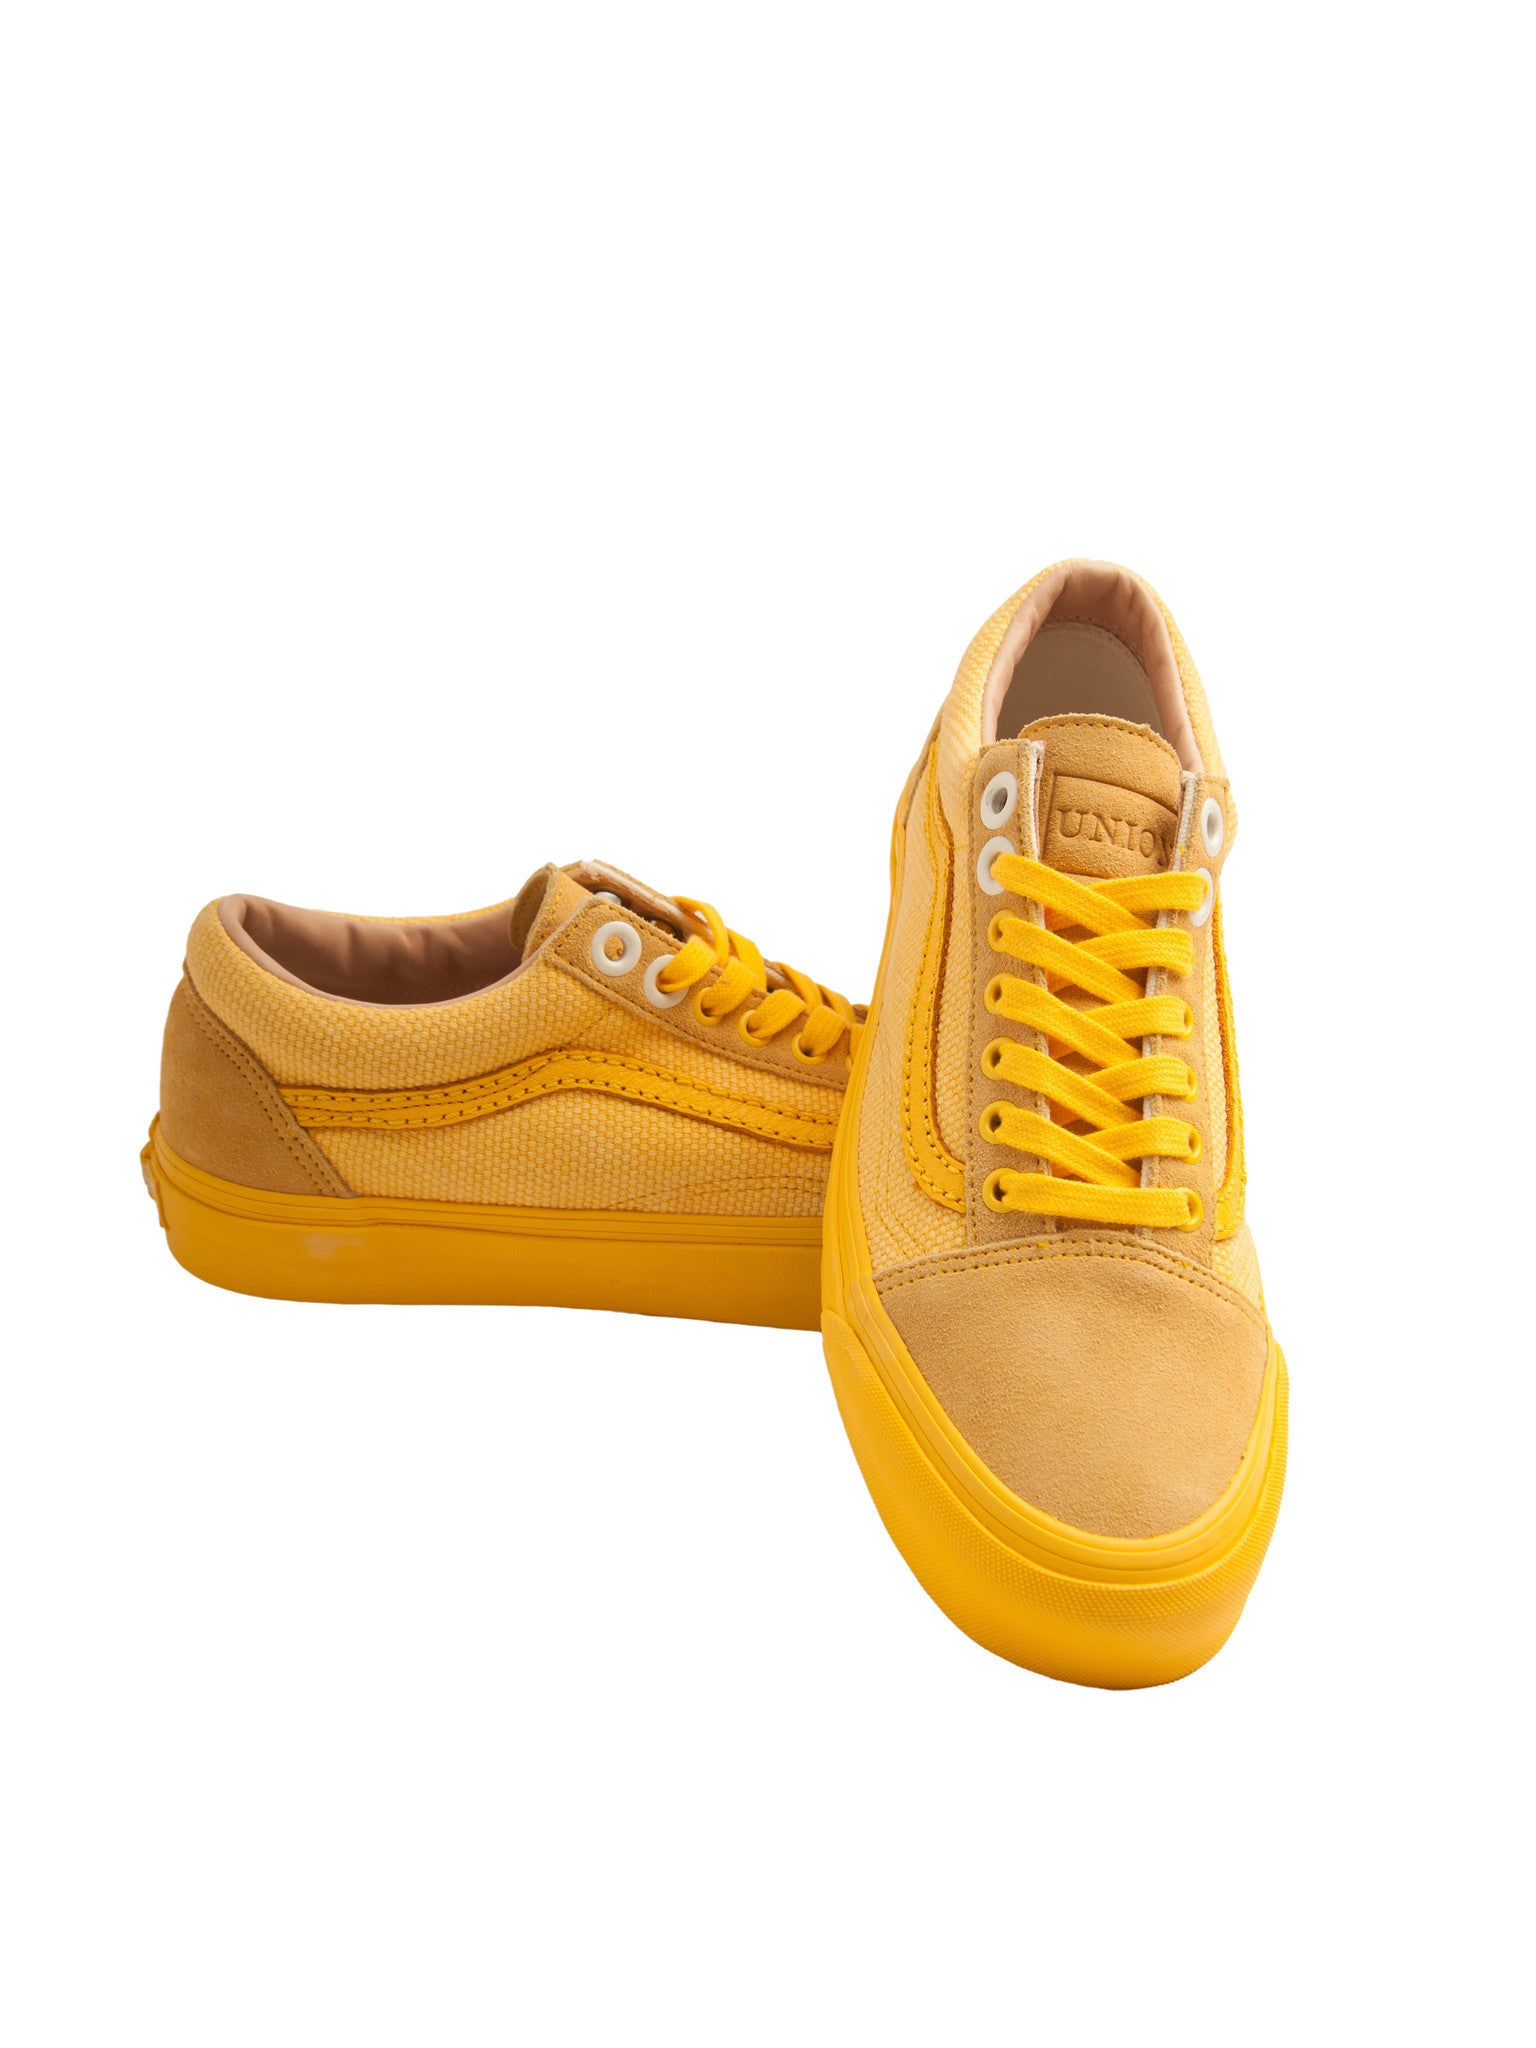 Vans Vault Old Skool (UNION) - Citrus